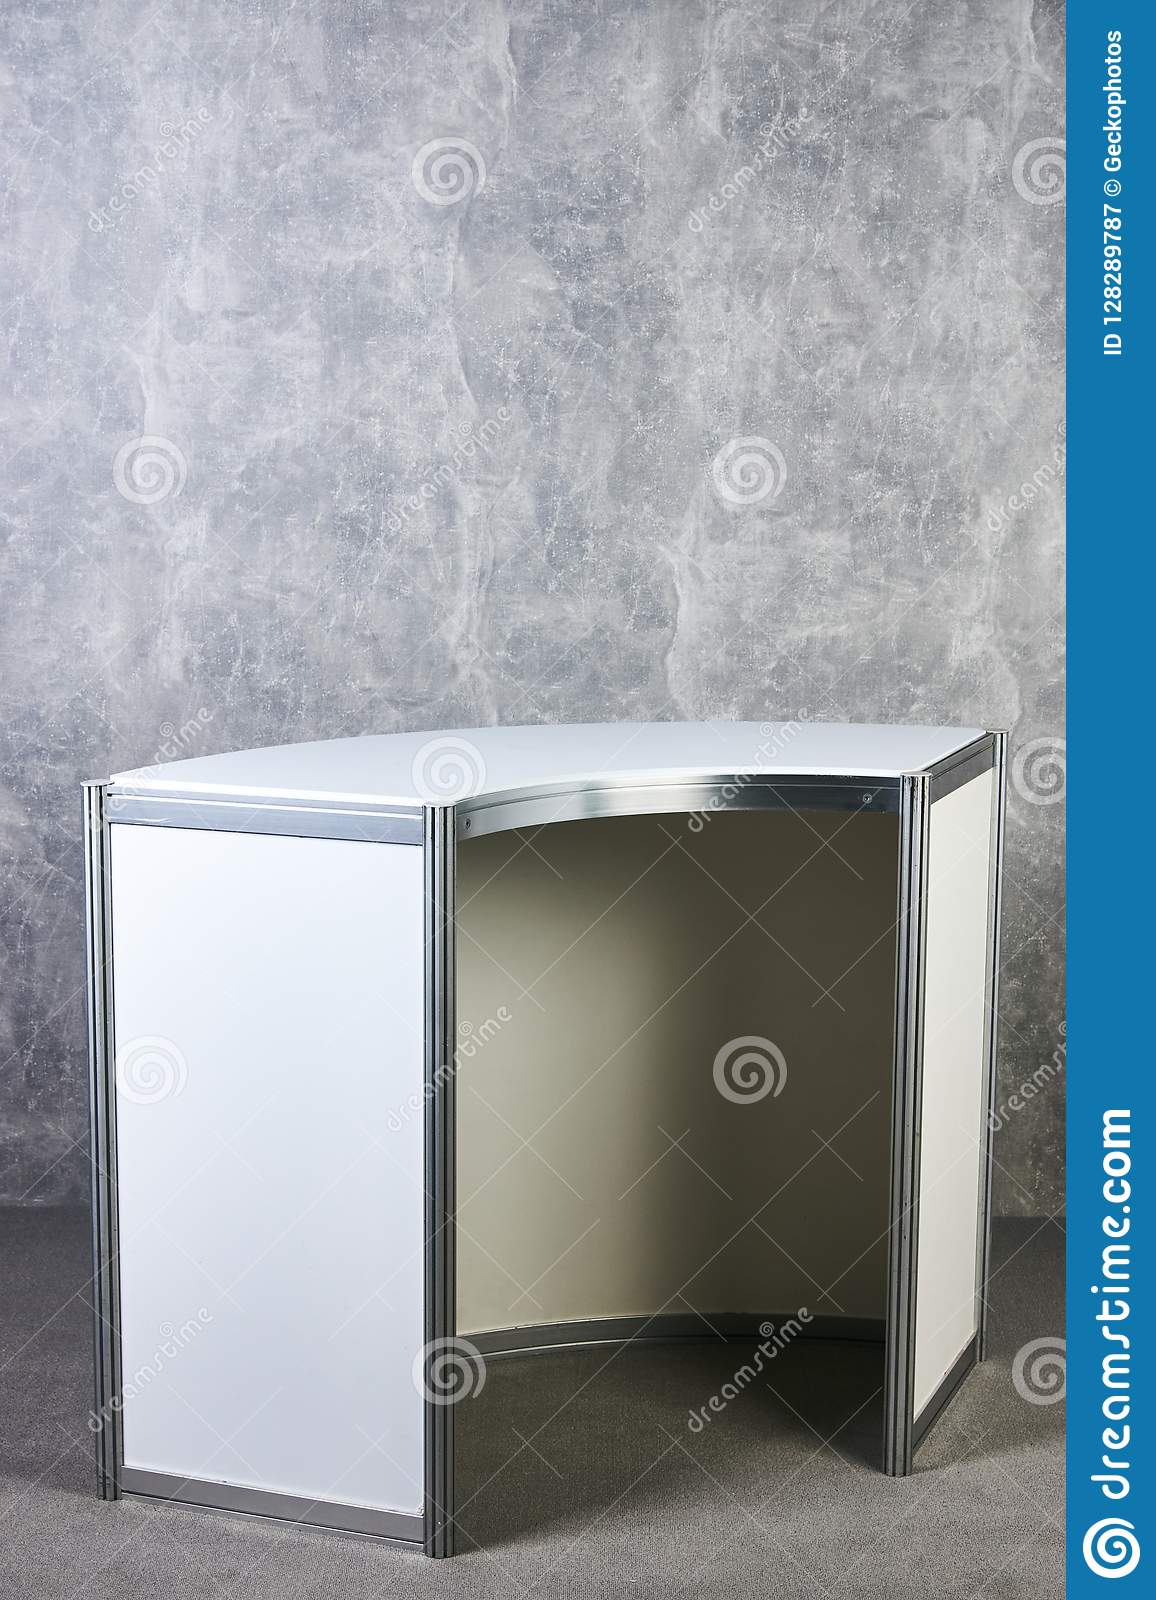 White showcase stand against gray textured wall background international exhibition furniture elements in large warehouse interior